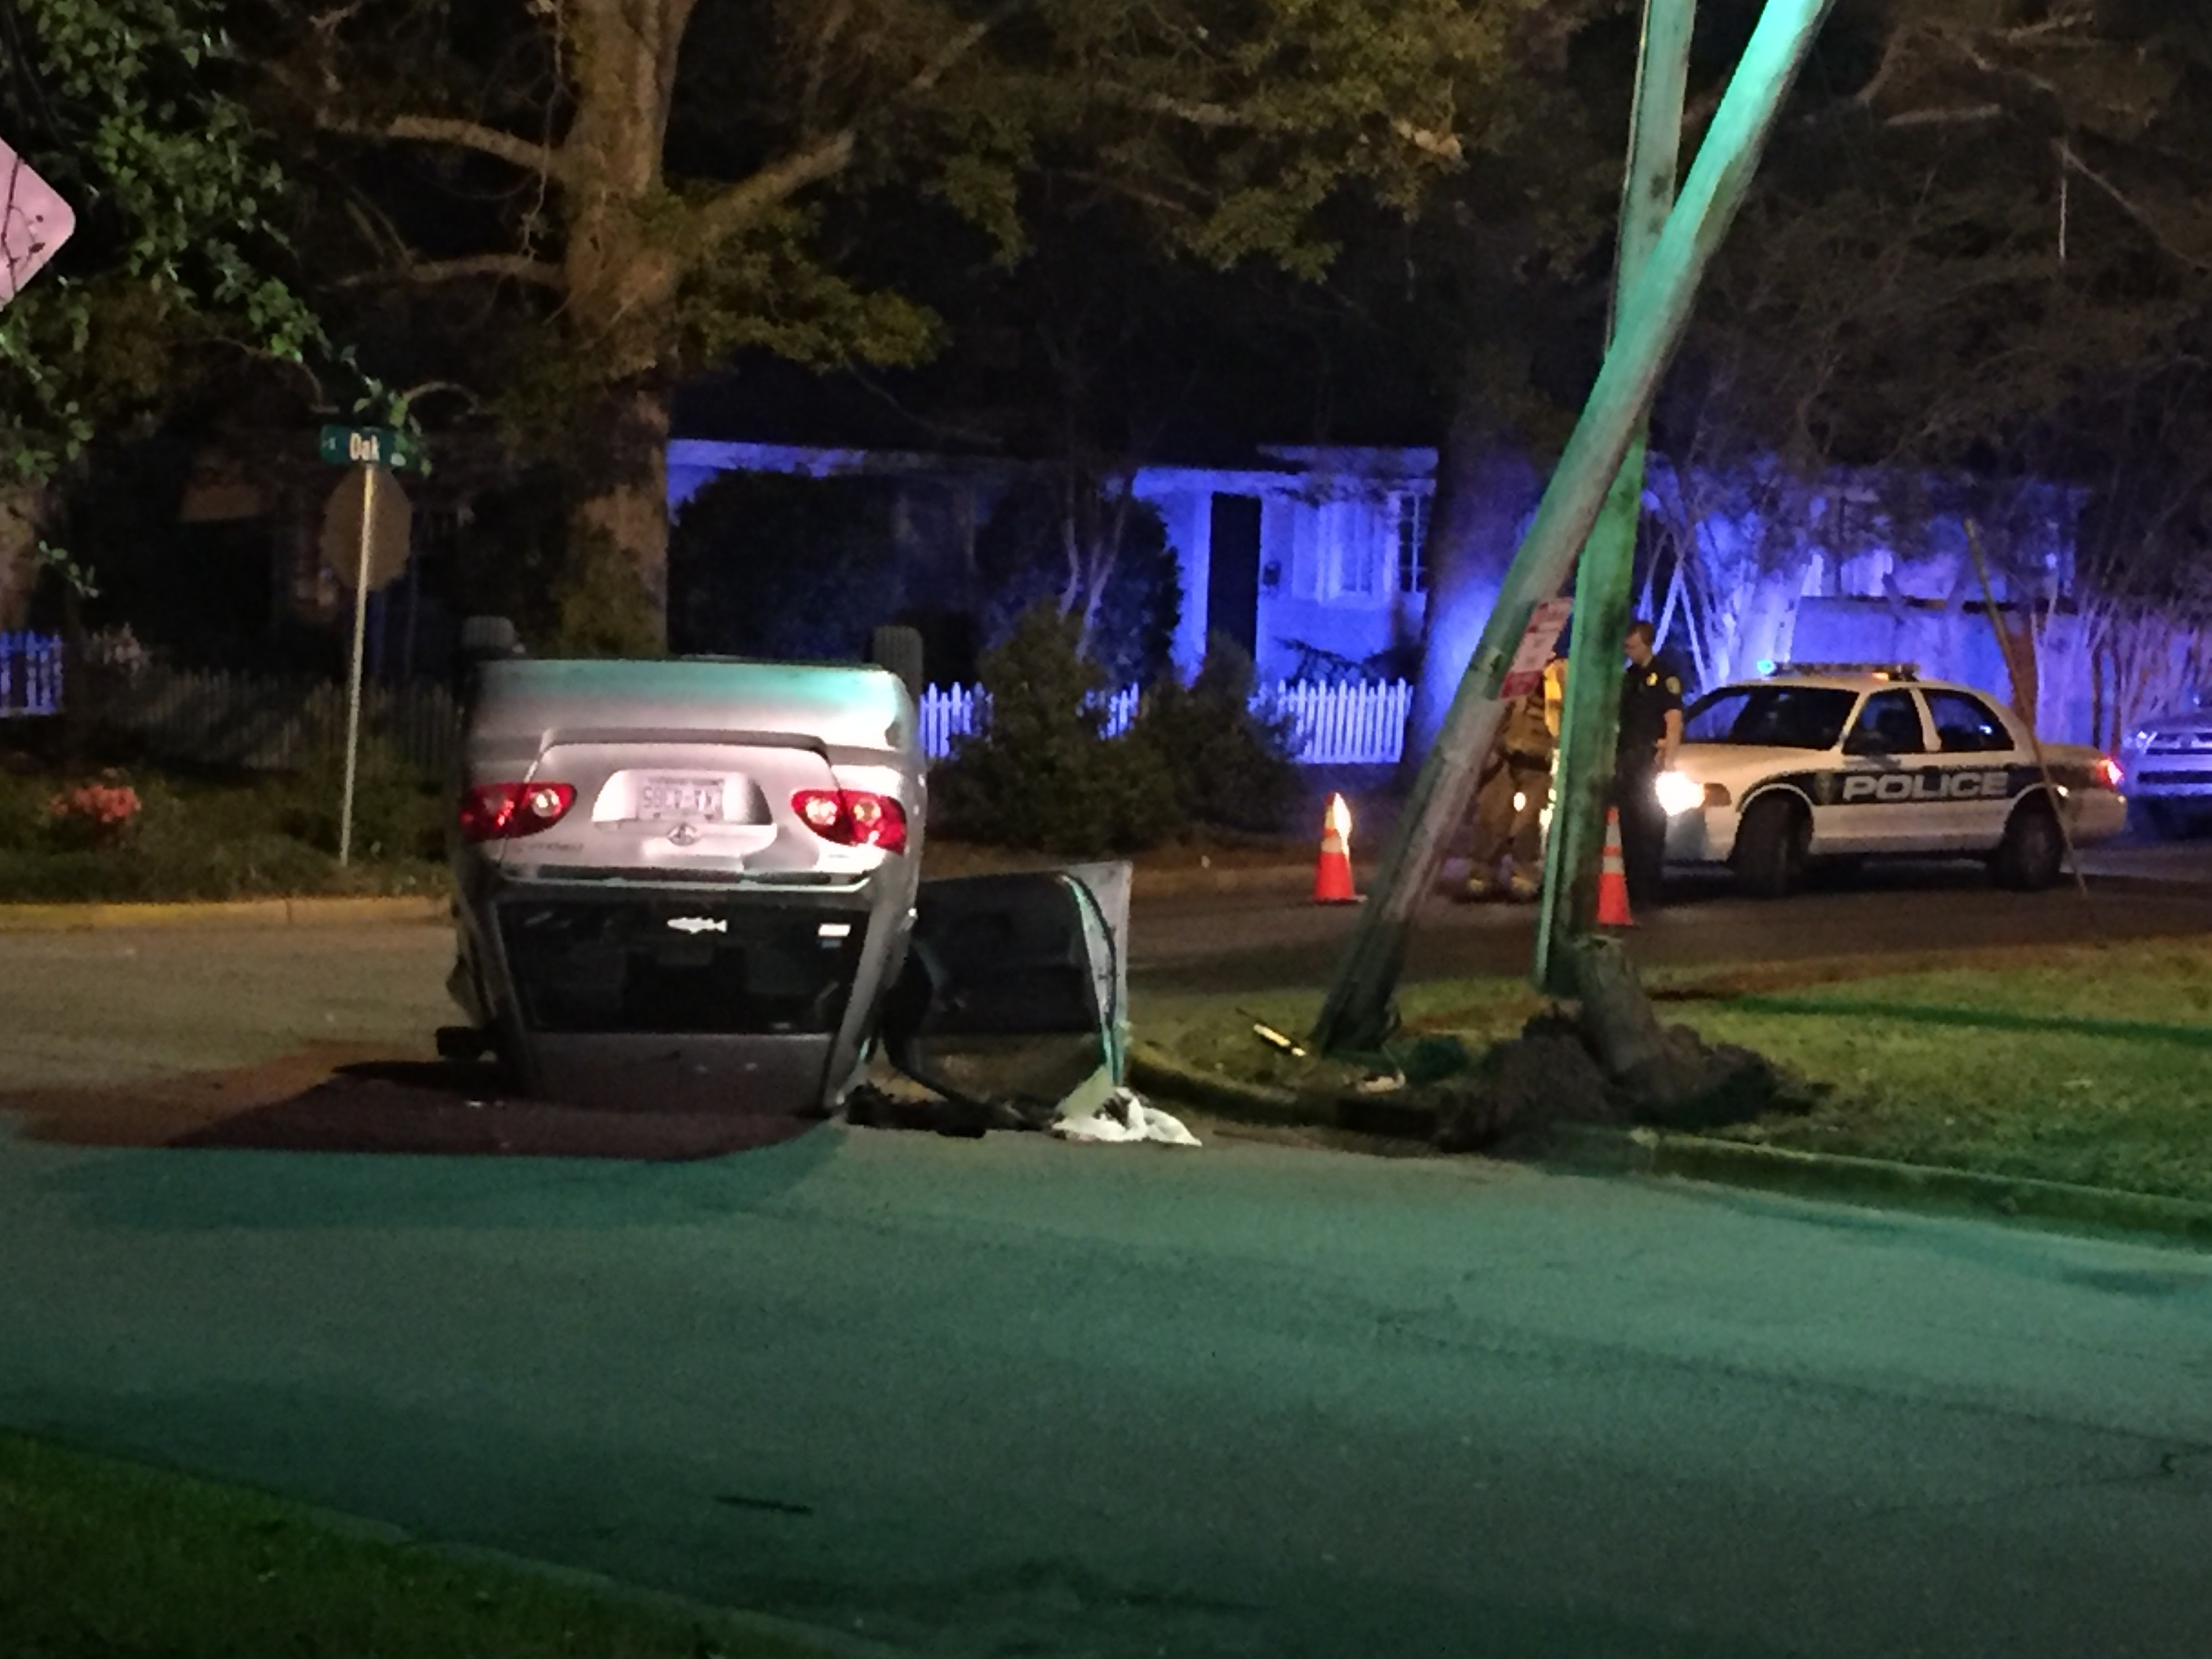 & Greenville driver arrested for DWI after car hits pole flips azcodes.com